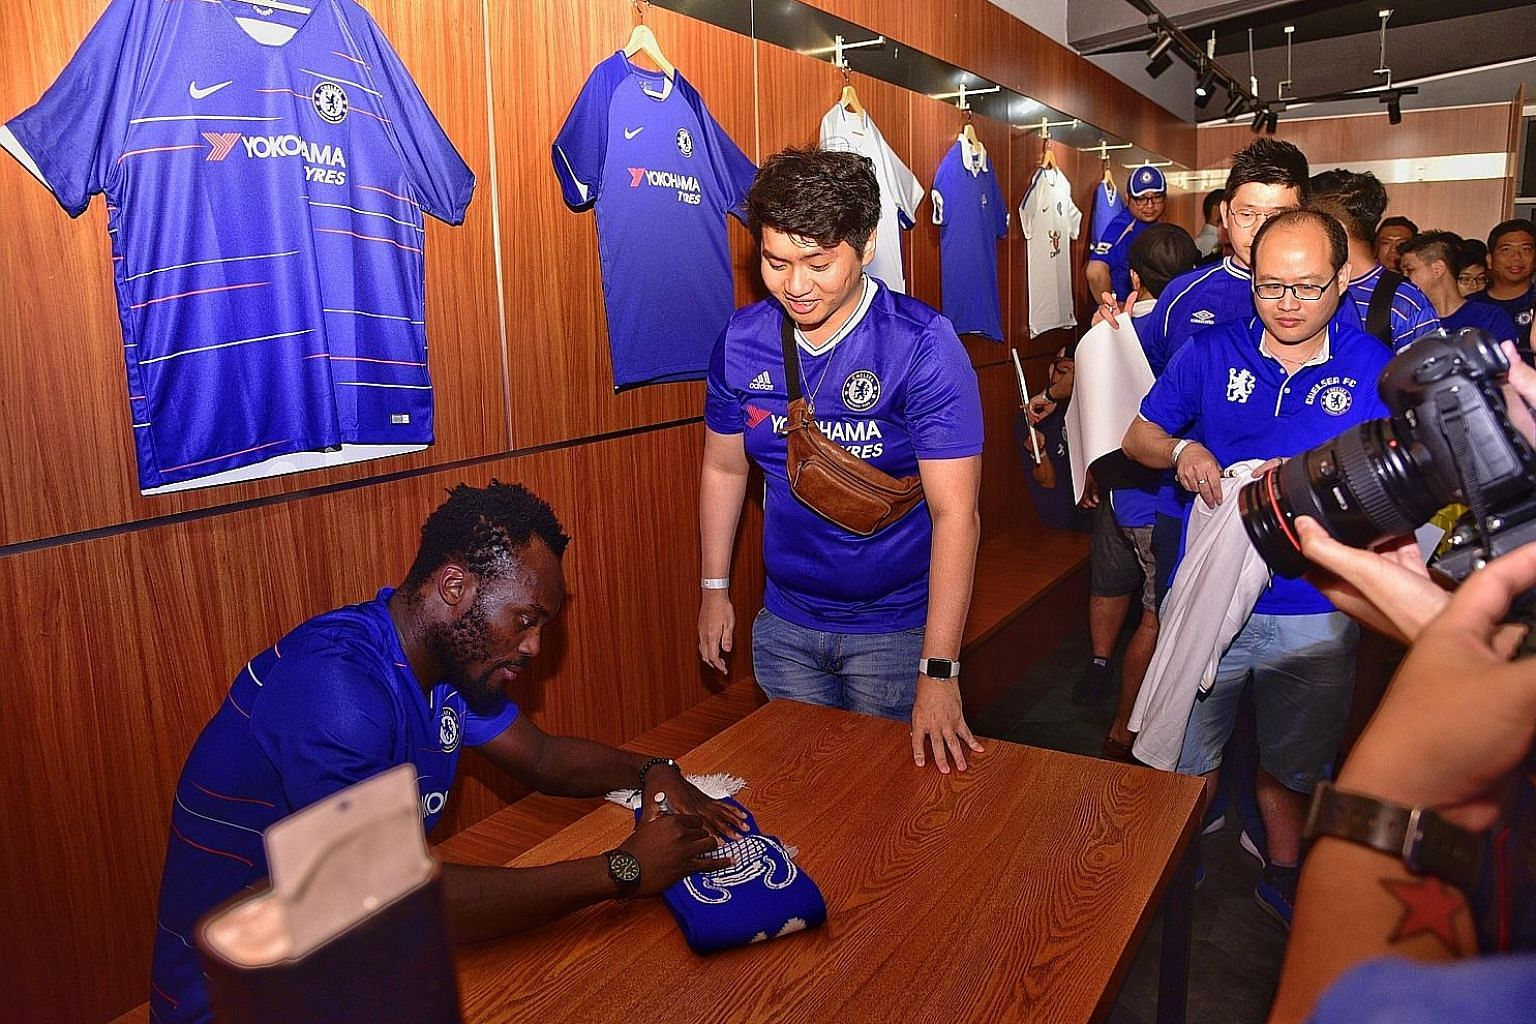 Jonathan Tan, a financial planner, is thrilled to have his Chelsea scarf signed by Michael Essien, who was in town for the club's fan and partner activities on Tuesday.